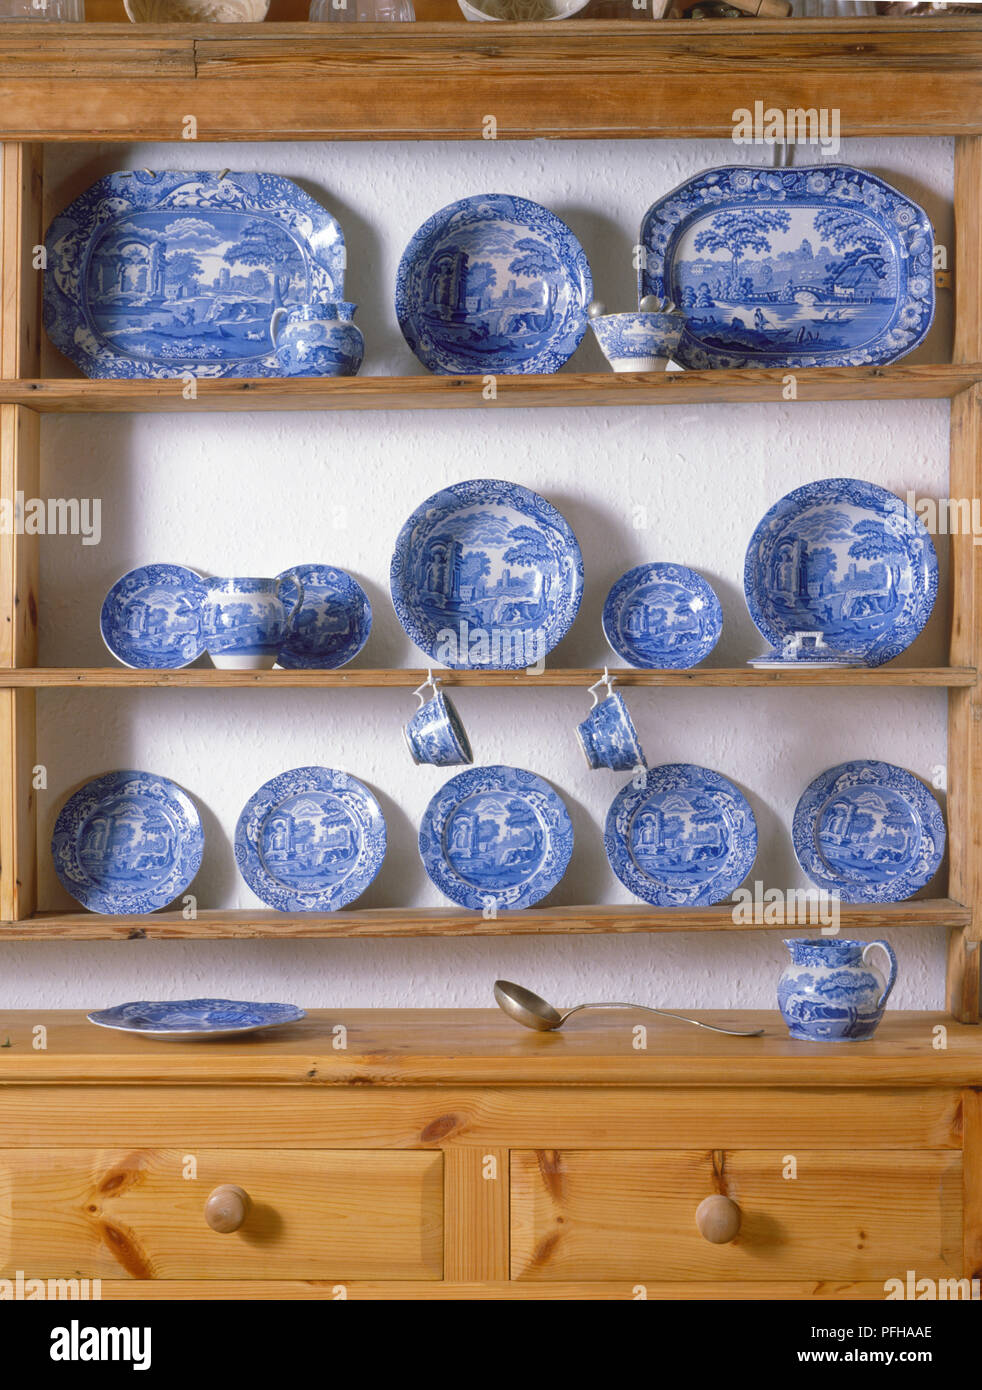 Blue Willow Plates Stock Photos Amp Blue Willow Plates Stock